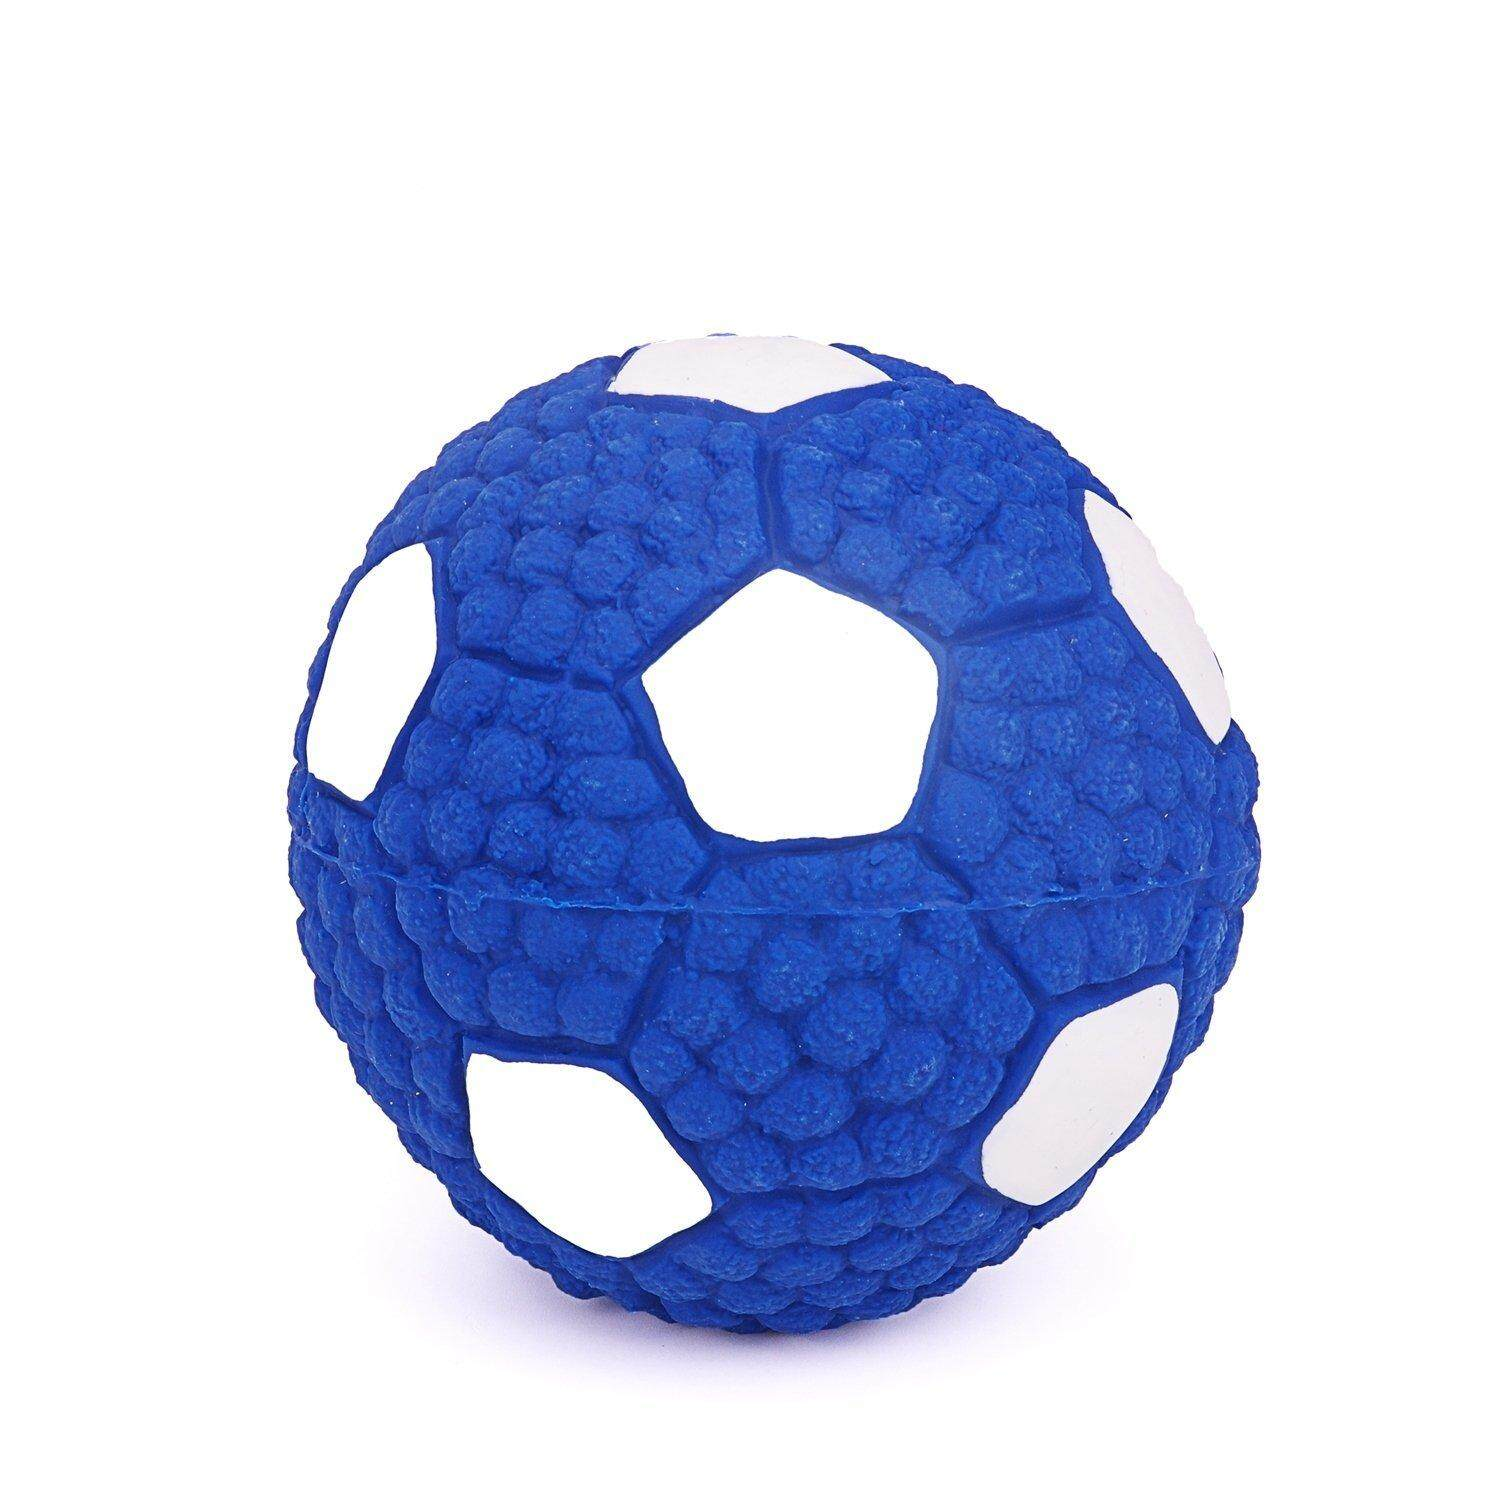 [FUN TIME] Studded Squeaky SoccerBall